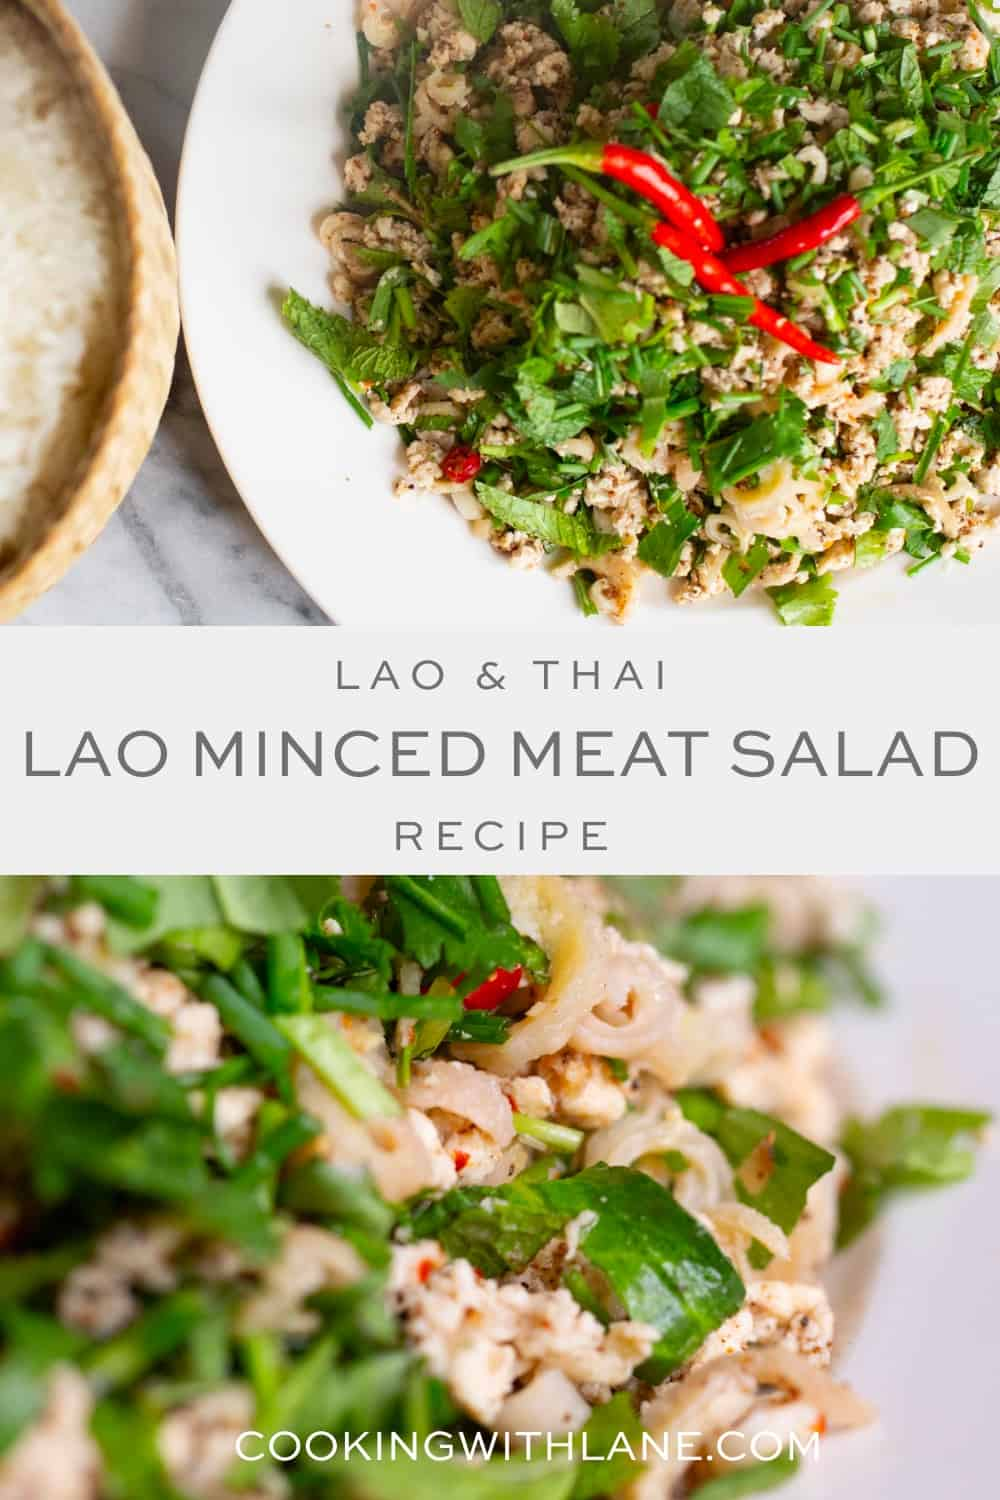 Thai and Lao larb dish